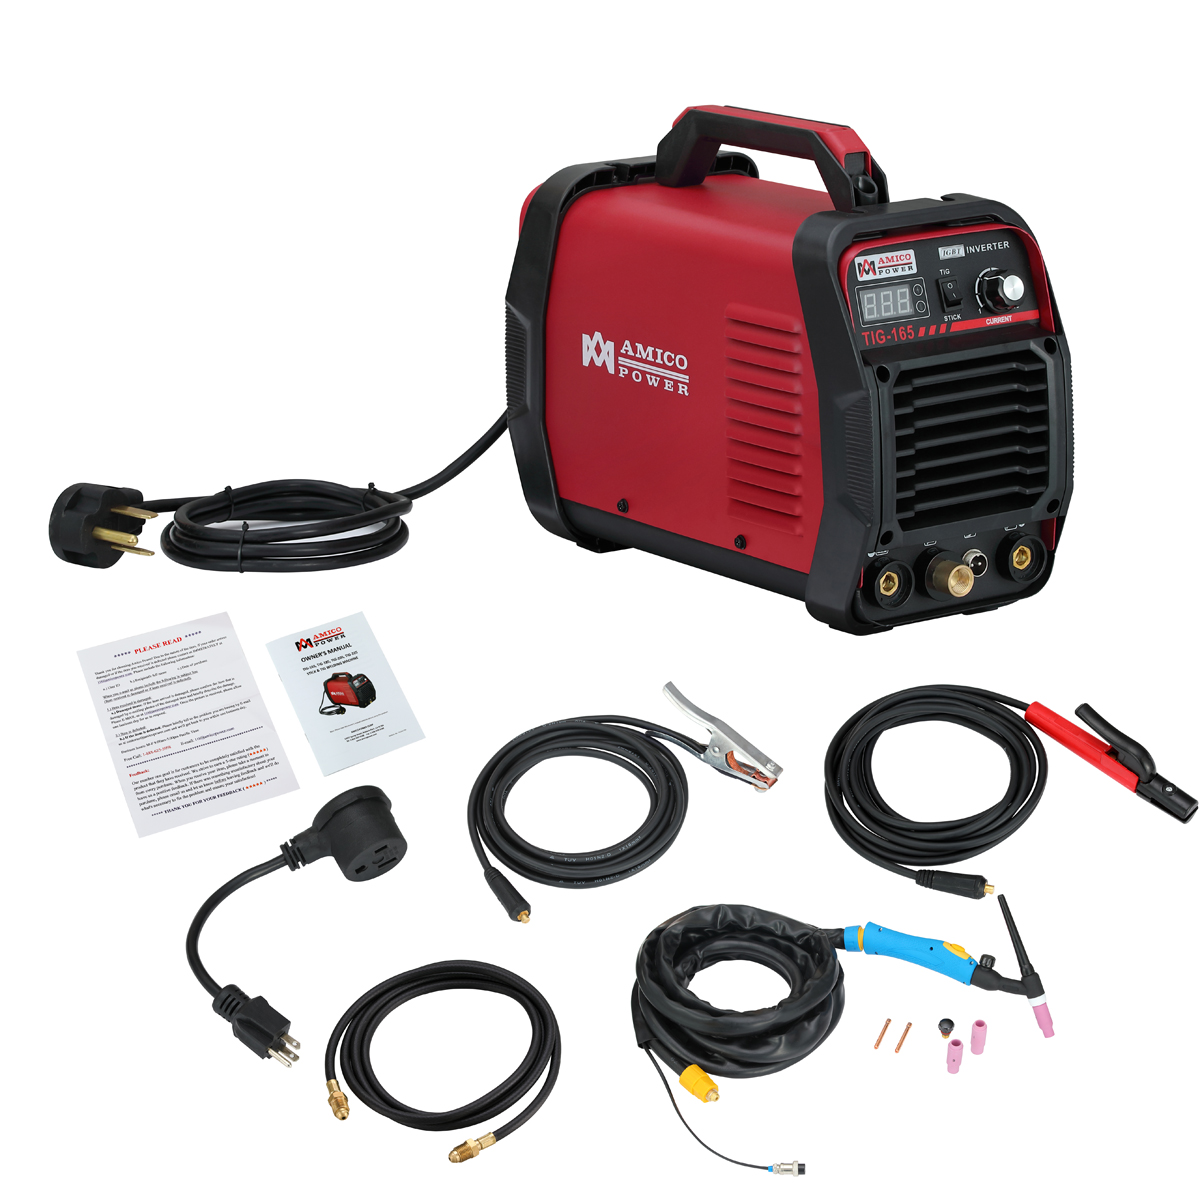 Amico TIG-165 160 Amp HF TIG Torch Stick Arc Welder 115 & 230V Dual Voltage Welding by Amico Power Corp.